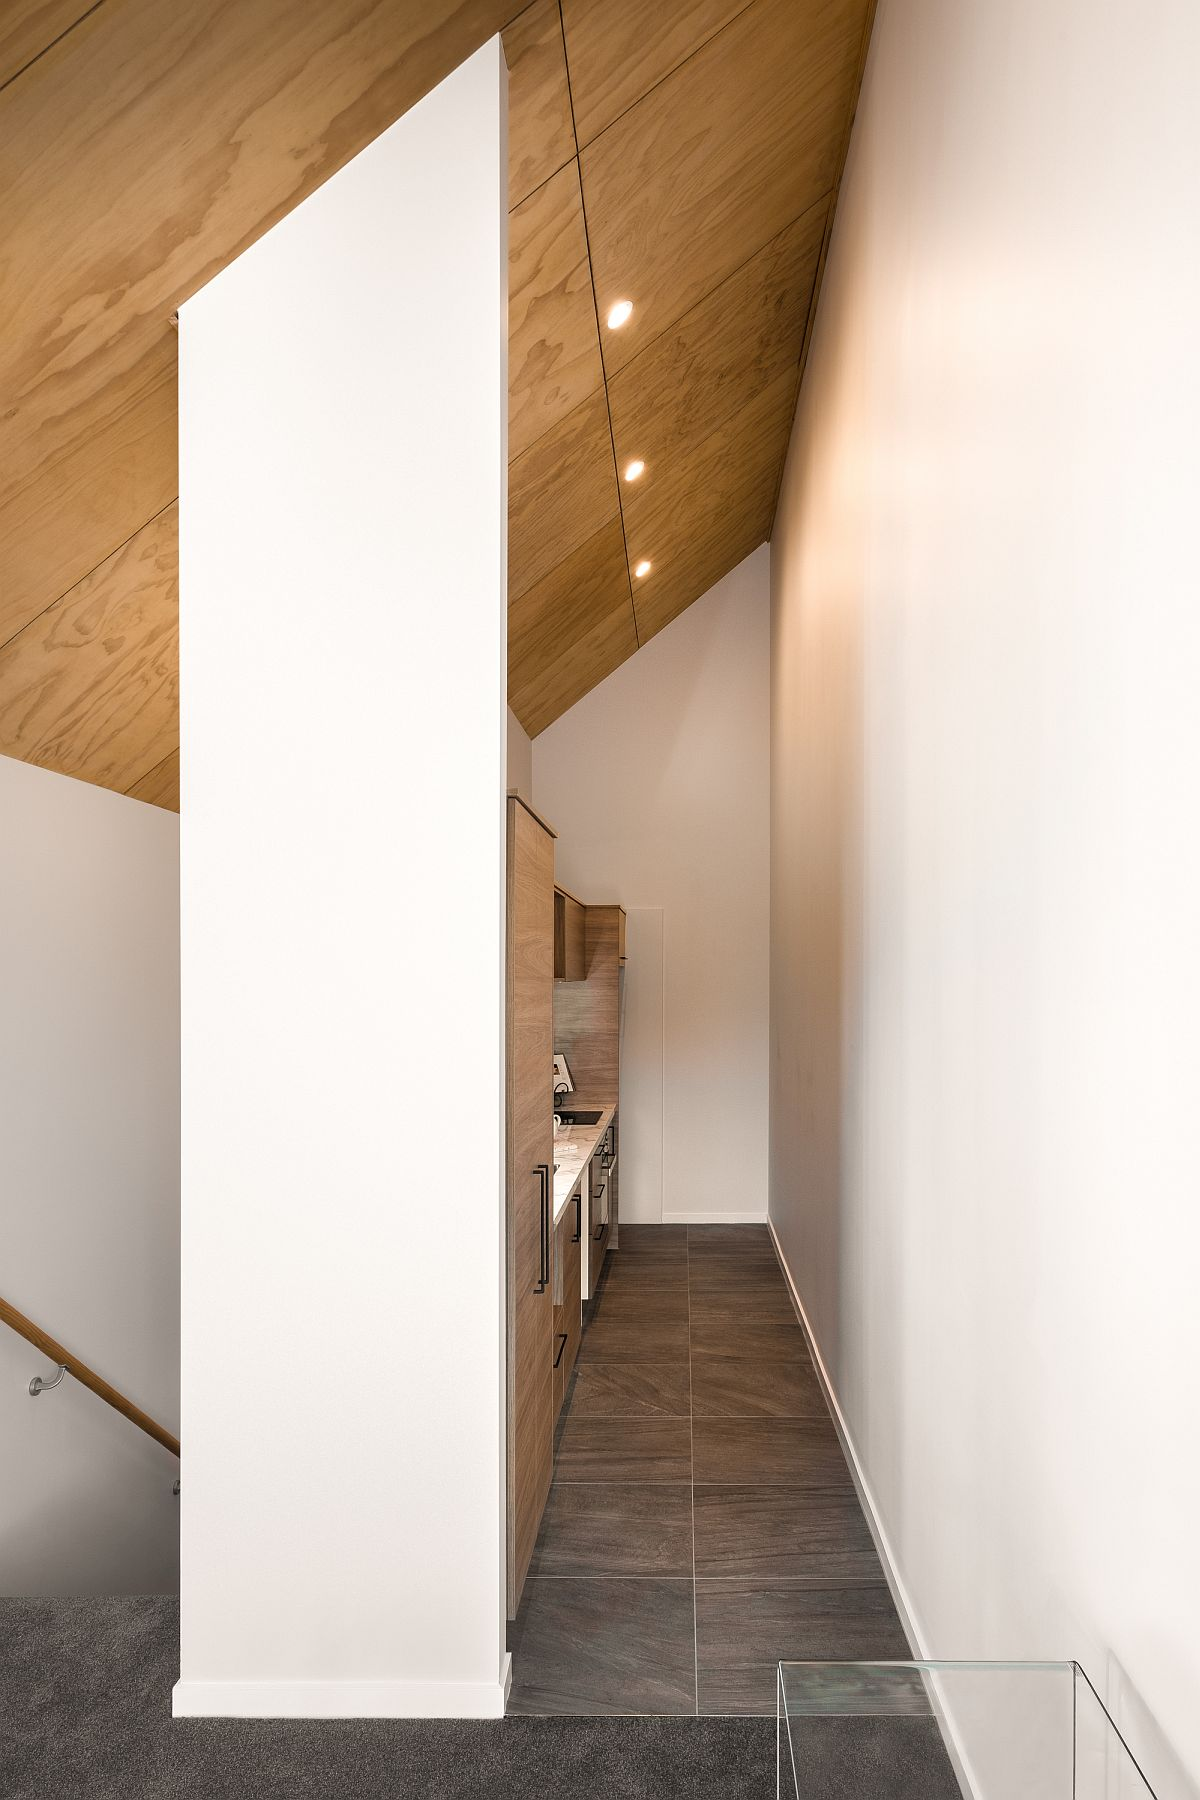 Small-and-narrow-kitchen-in-wood-and-white-33045